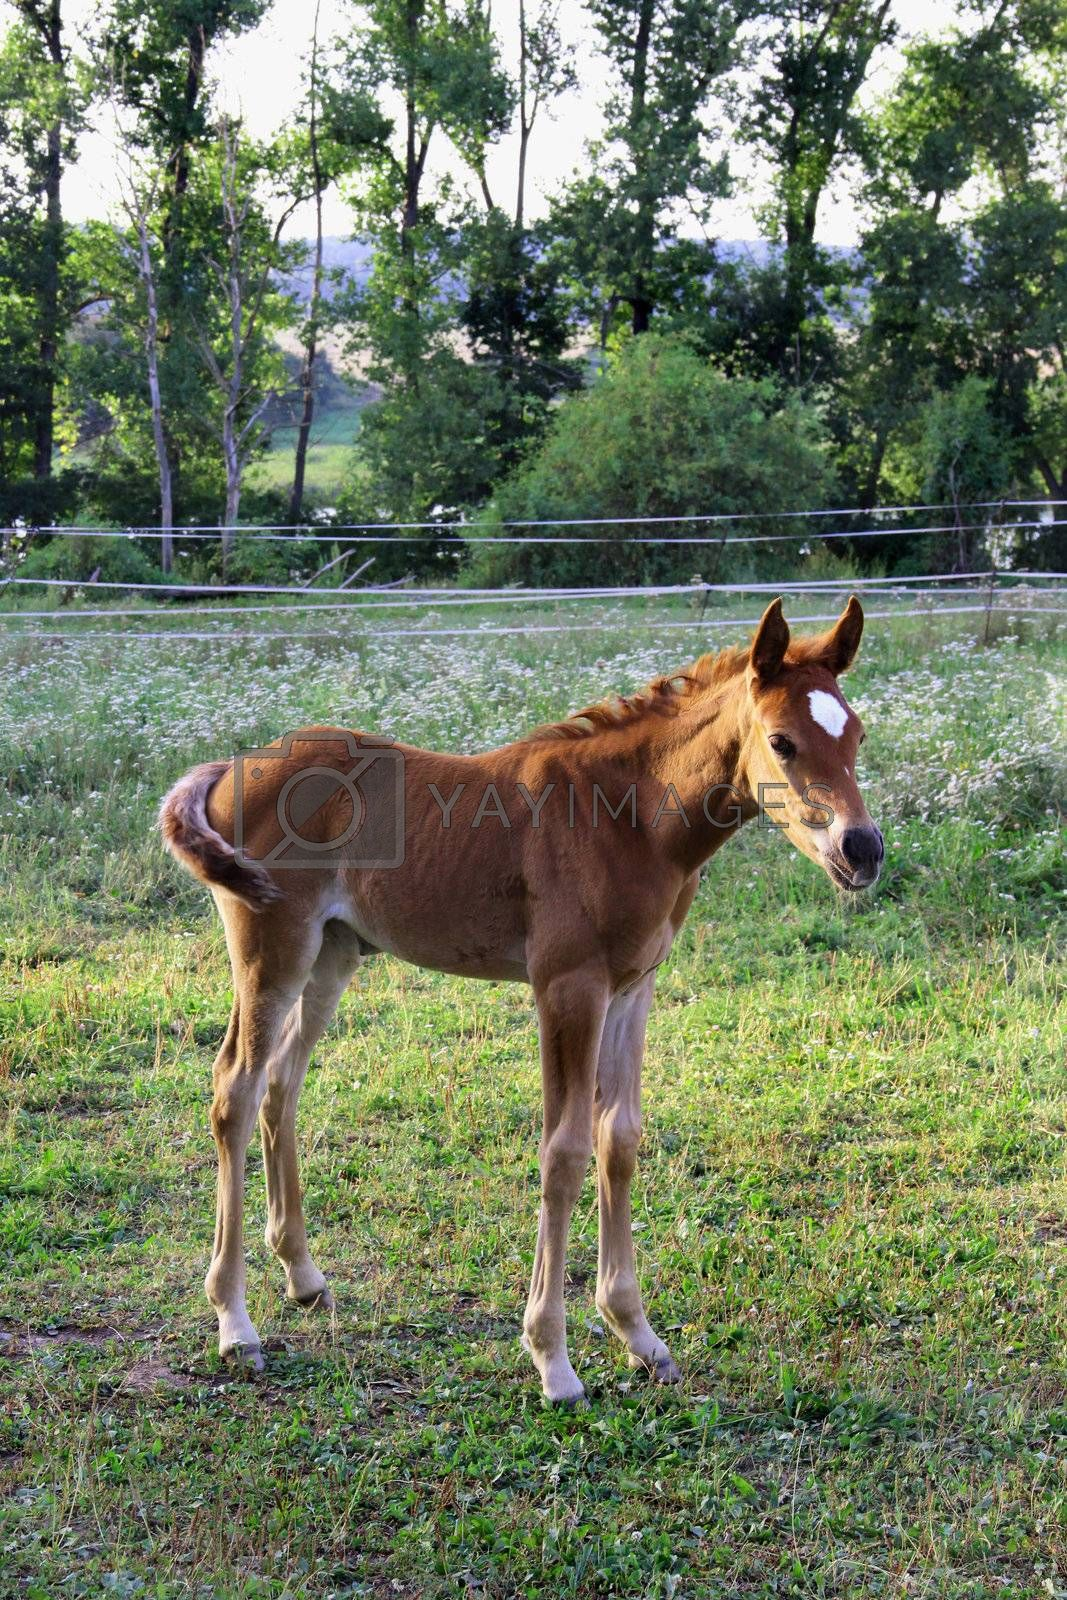 Small funny foal waiting for its mom